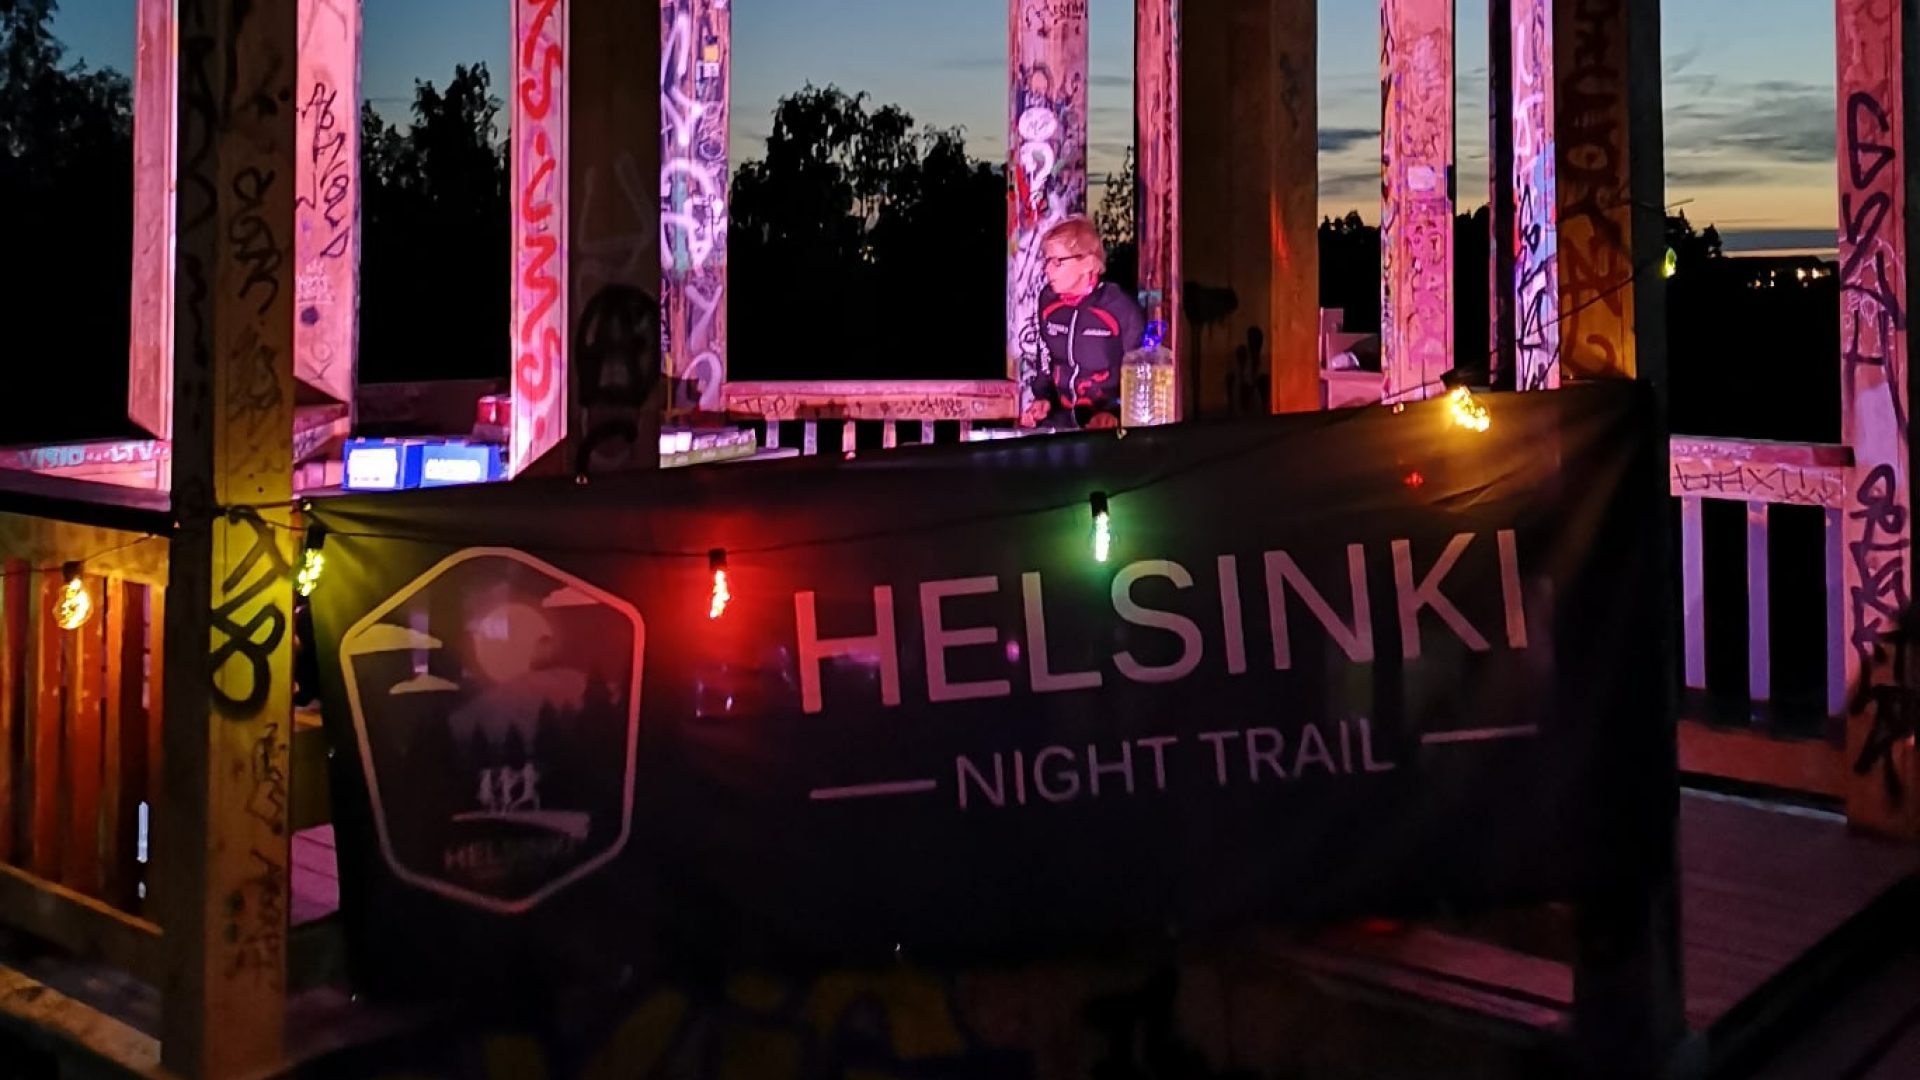 Helsinki Night Trail